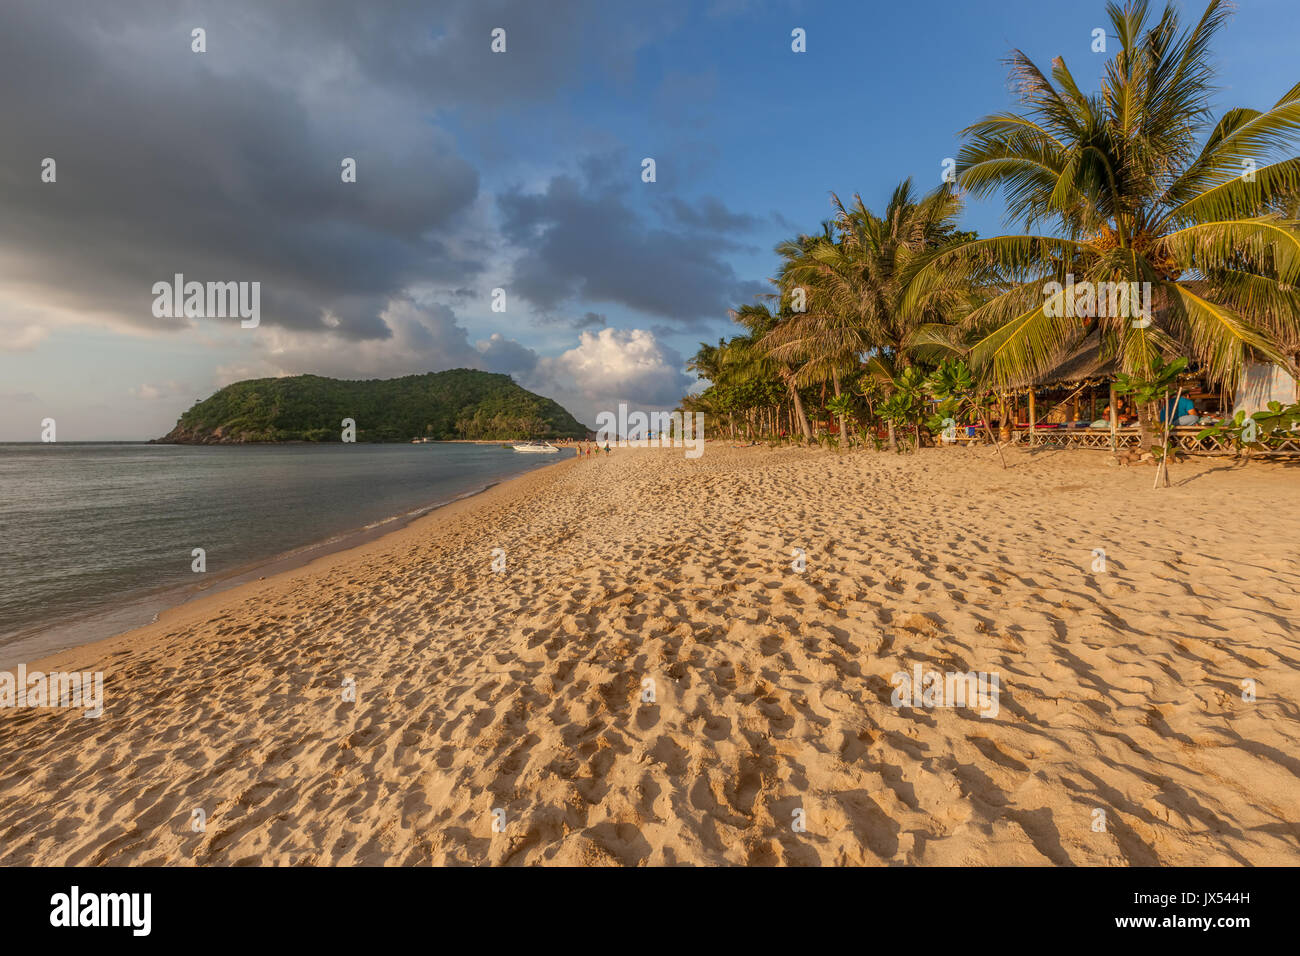 Mae Haad Beach at sunset, Koh Phangan island, Thailand - Stock Image